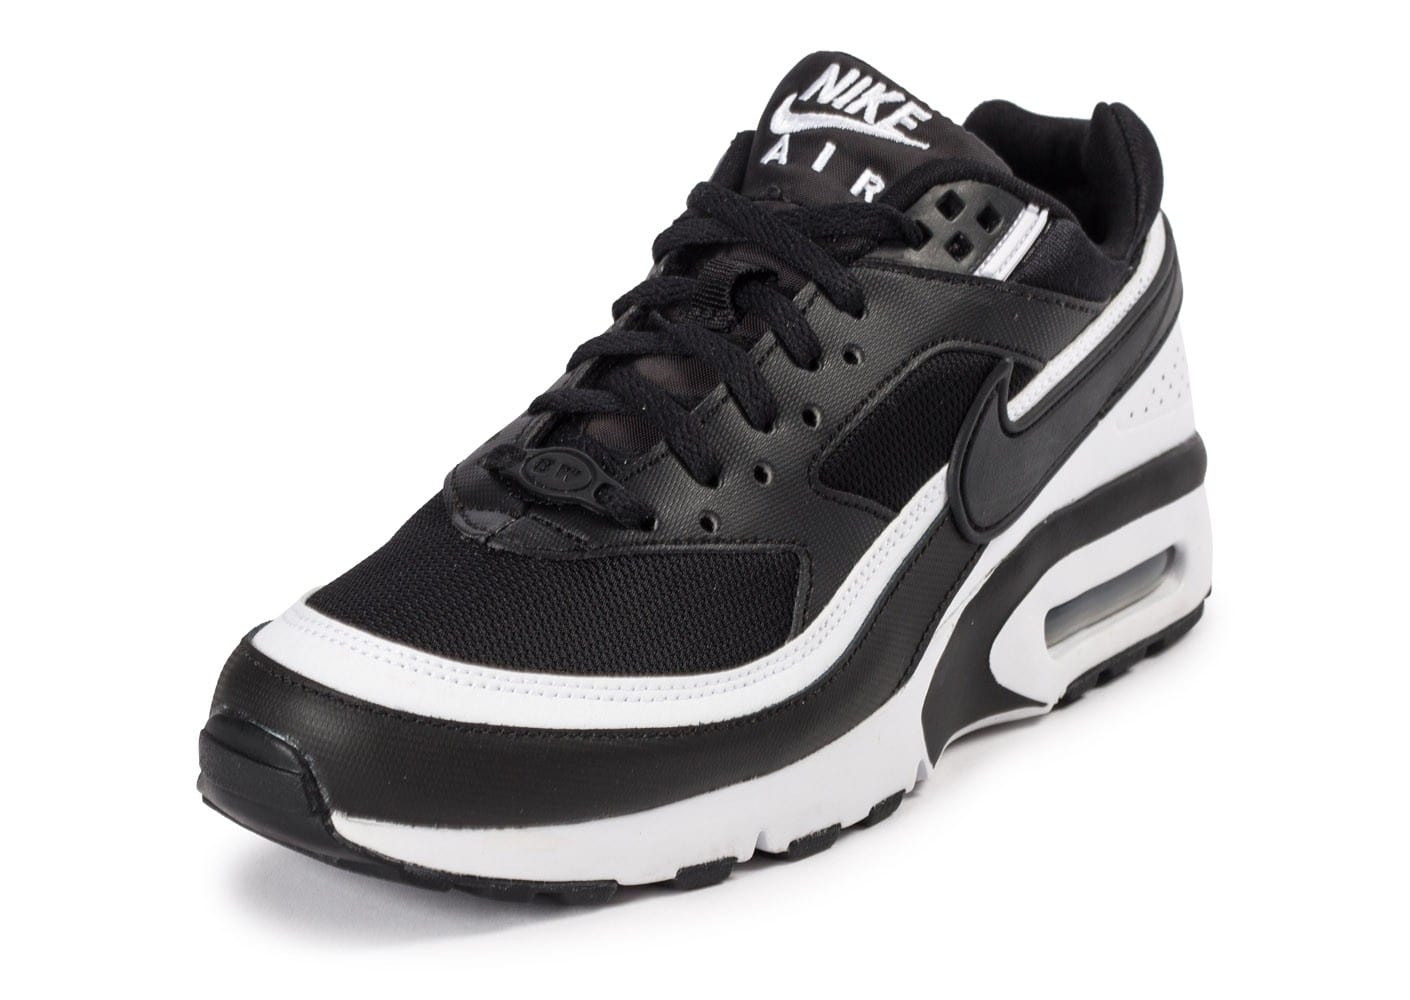 nike air max bw junior noire et blanche chaussures 50 sur le 2e article chausport. Black Bedroom Furniture Sets. Home Design Ideas